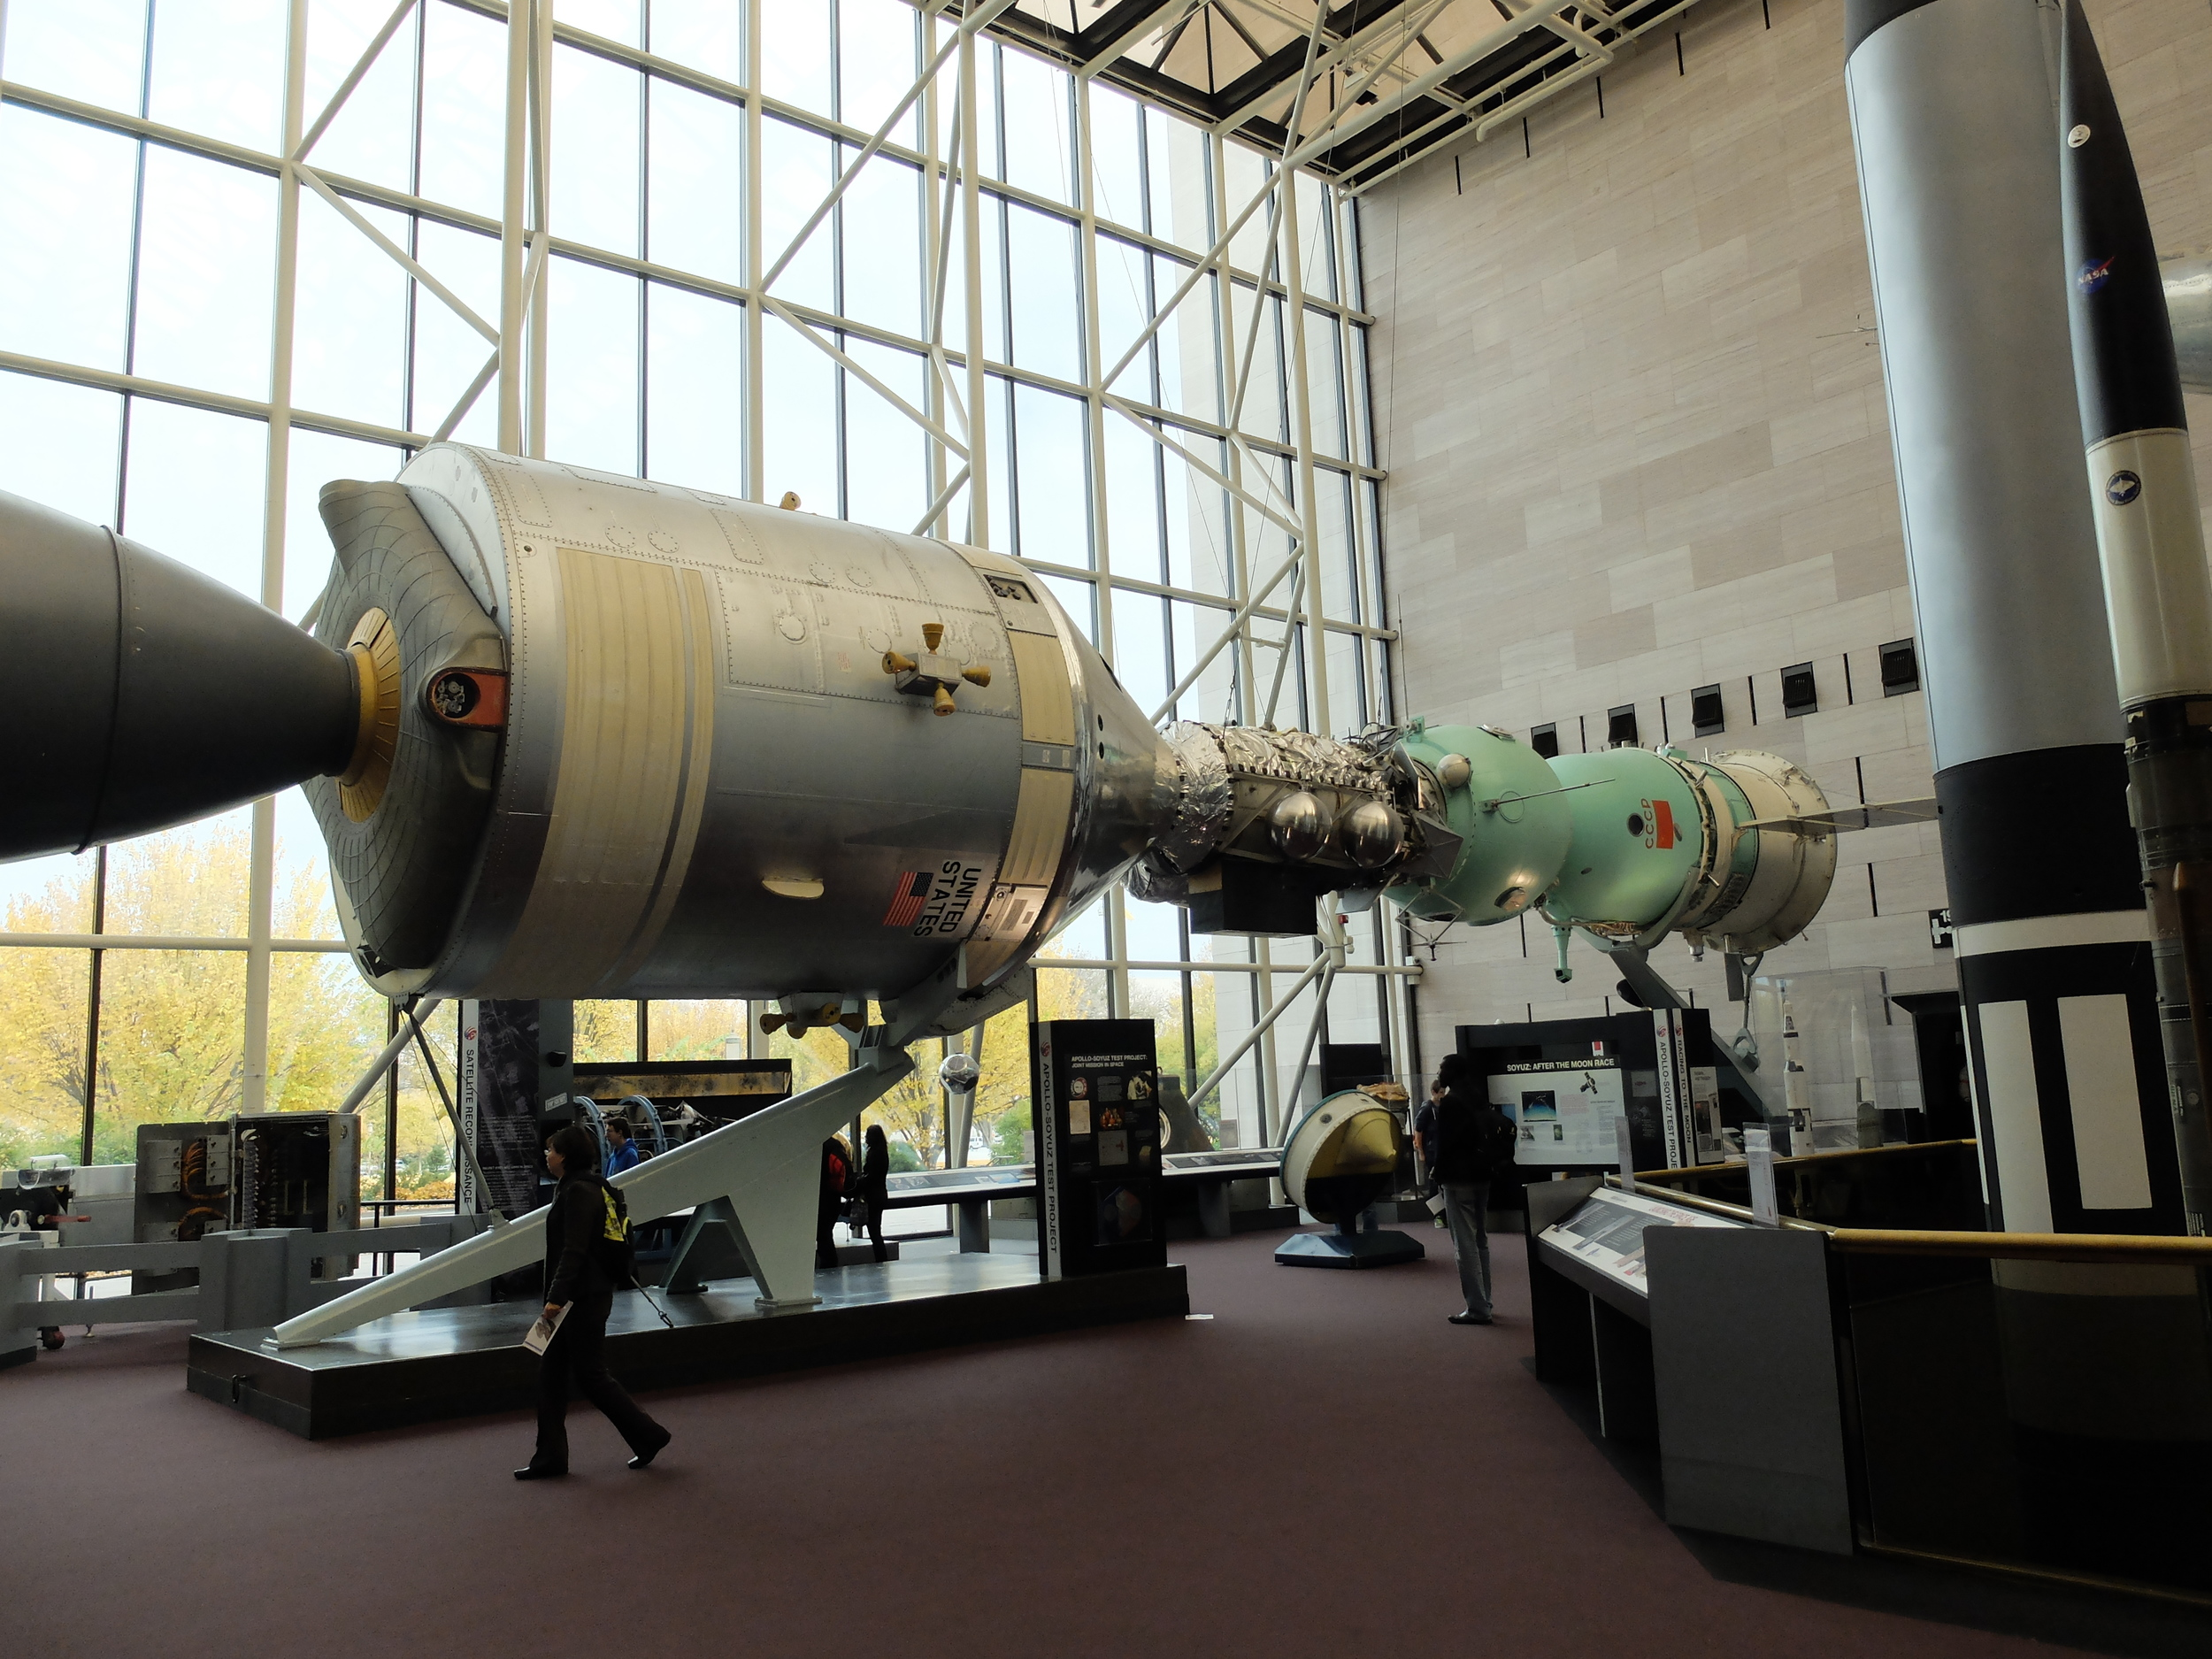 Apollo and Soyuz